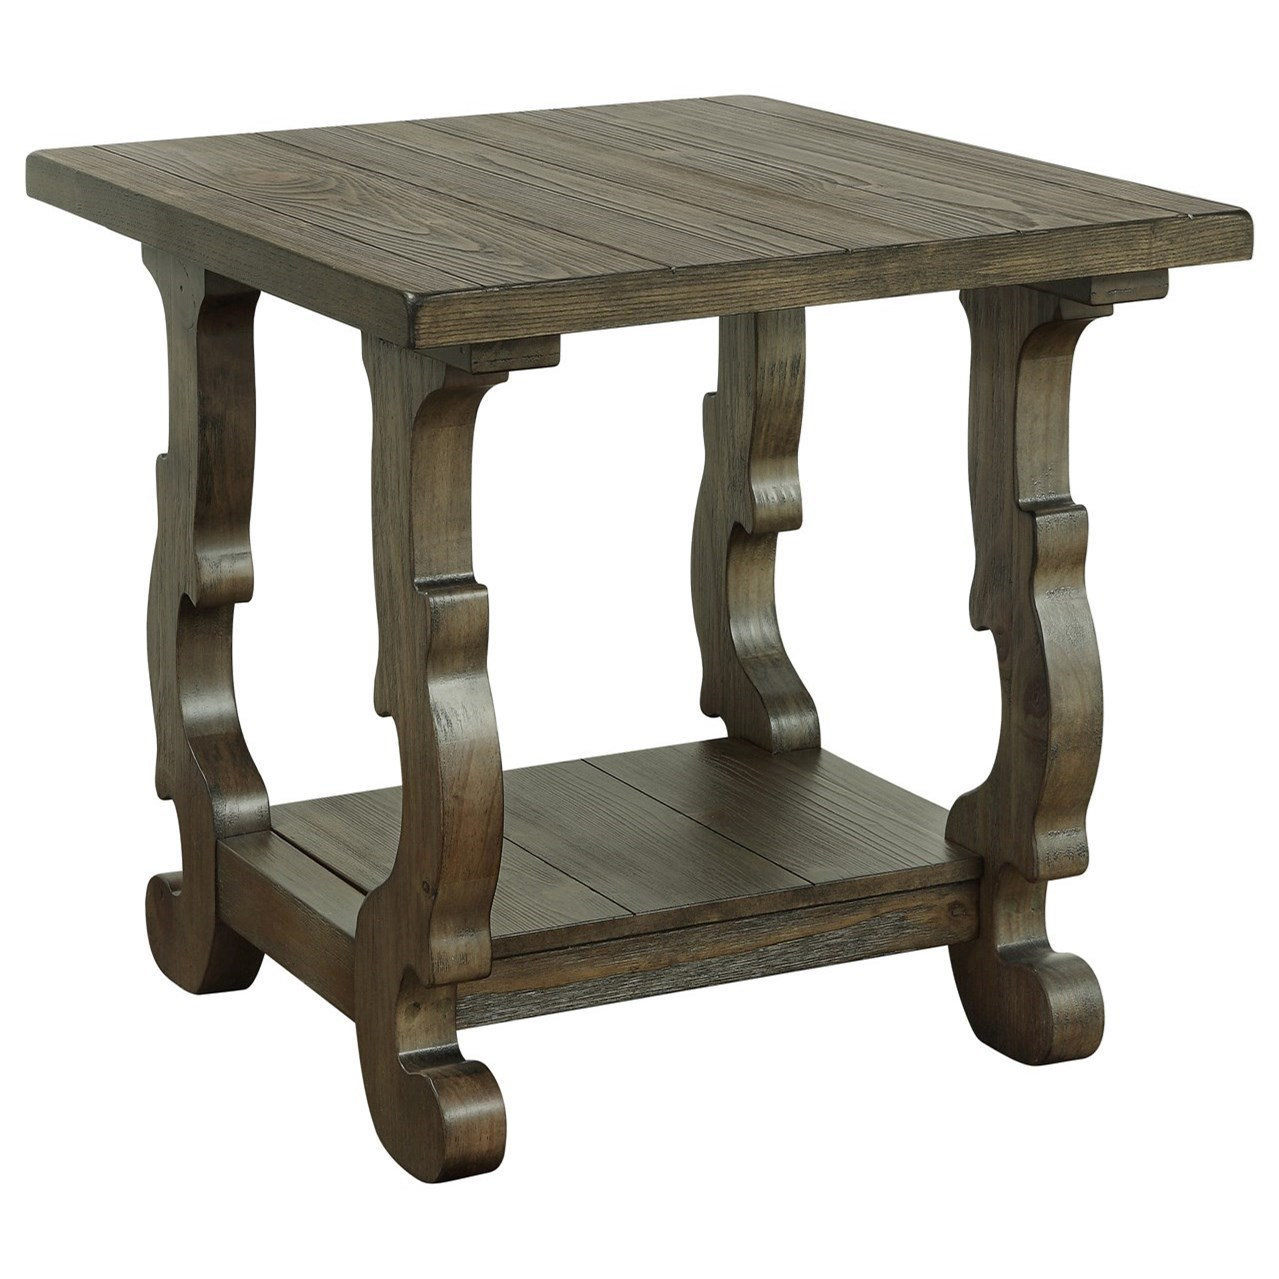 Orchard Park End Table by C2C at Walker's Furniture